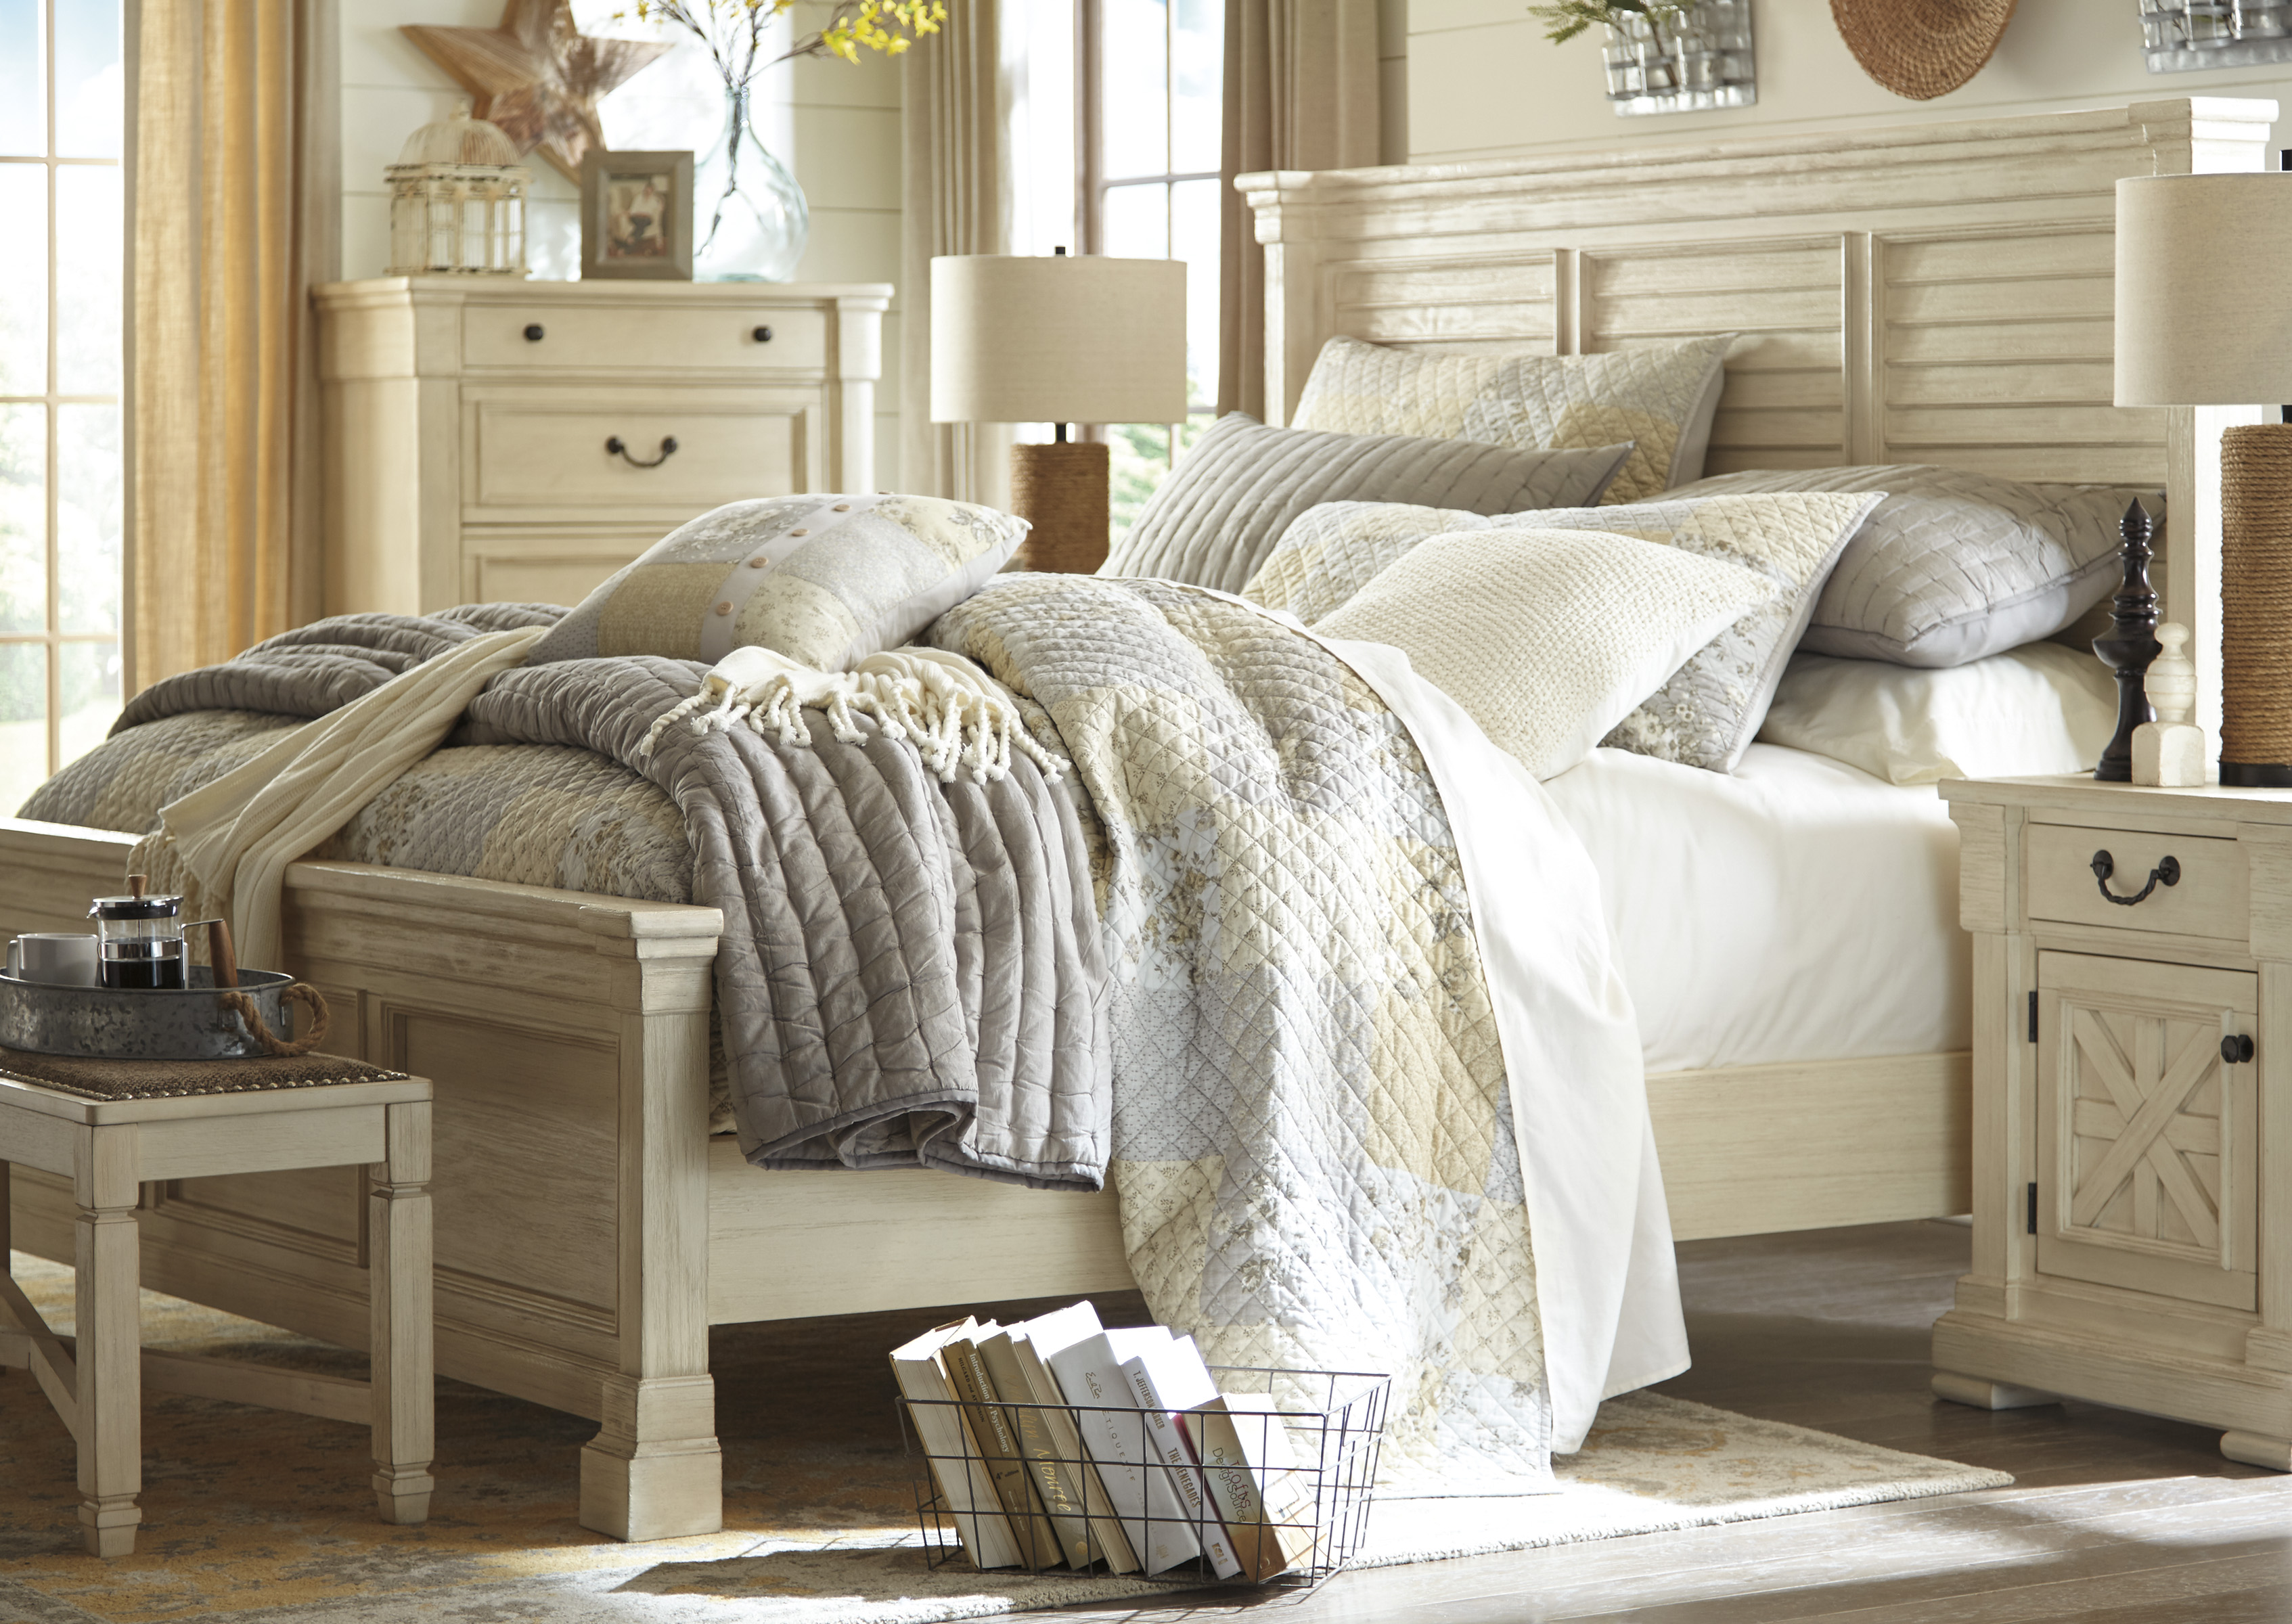 Affordable Ashley Bedroom Furniture For Sale In Philadelphia Pa